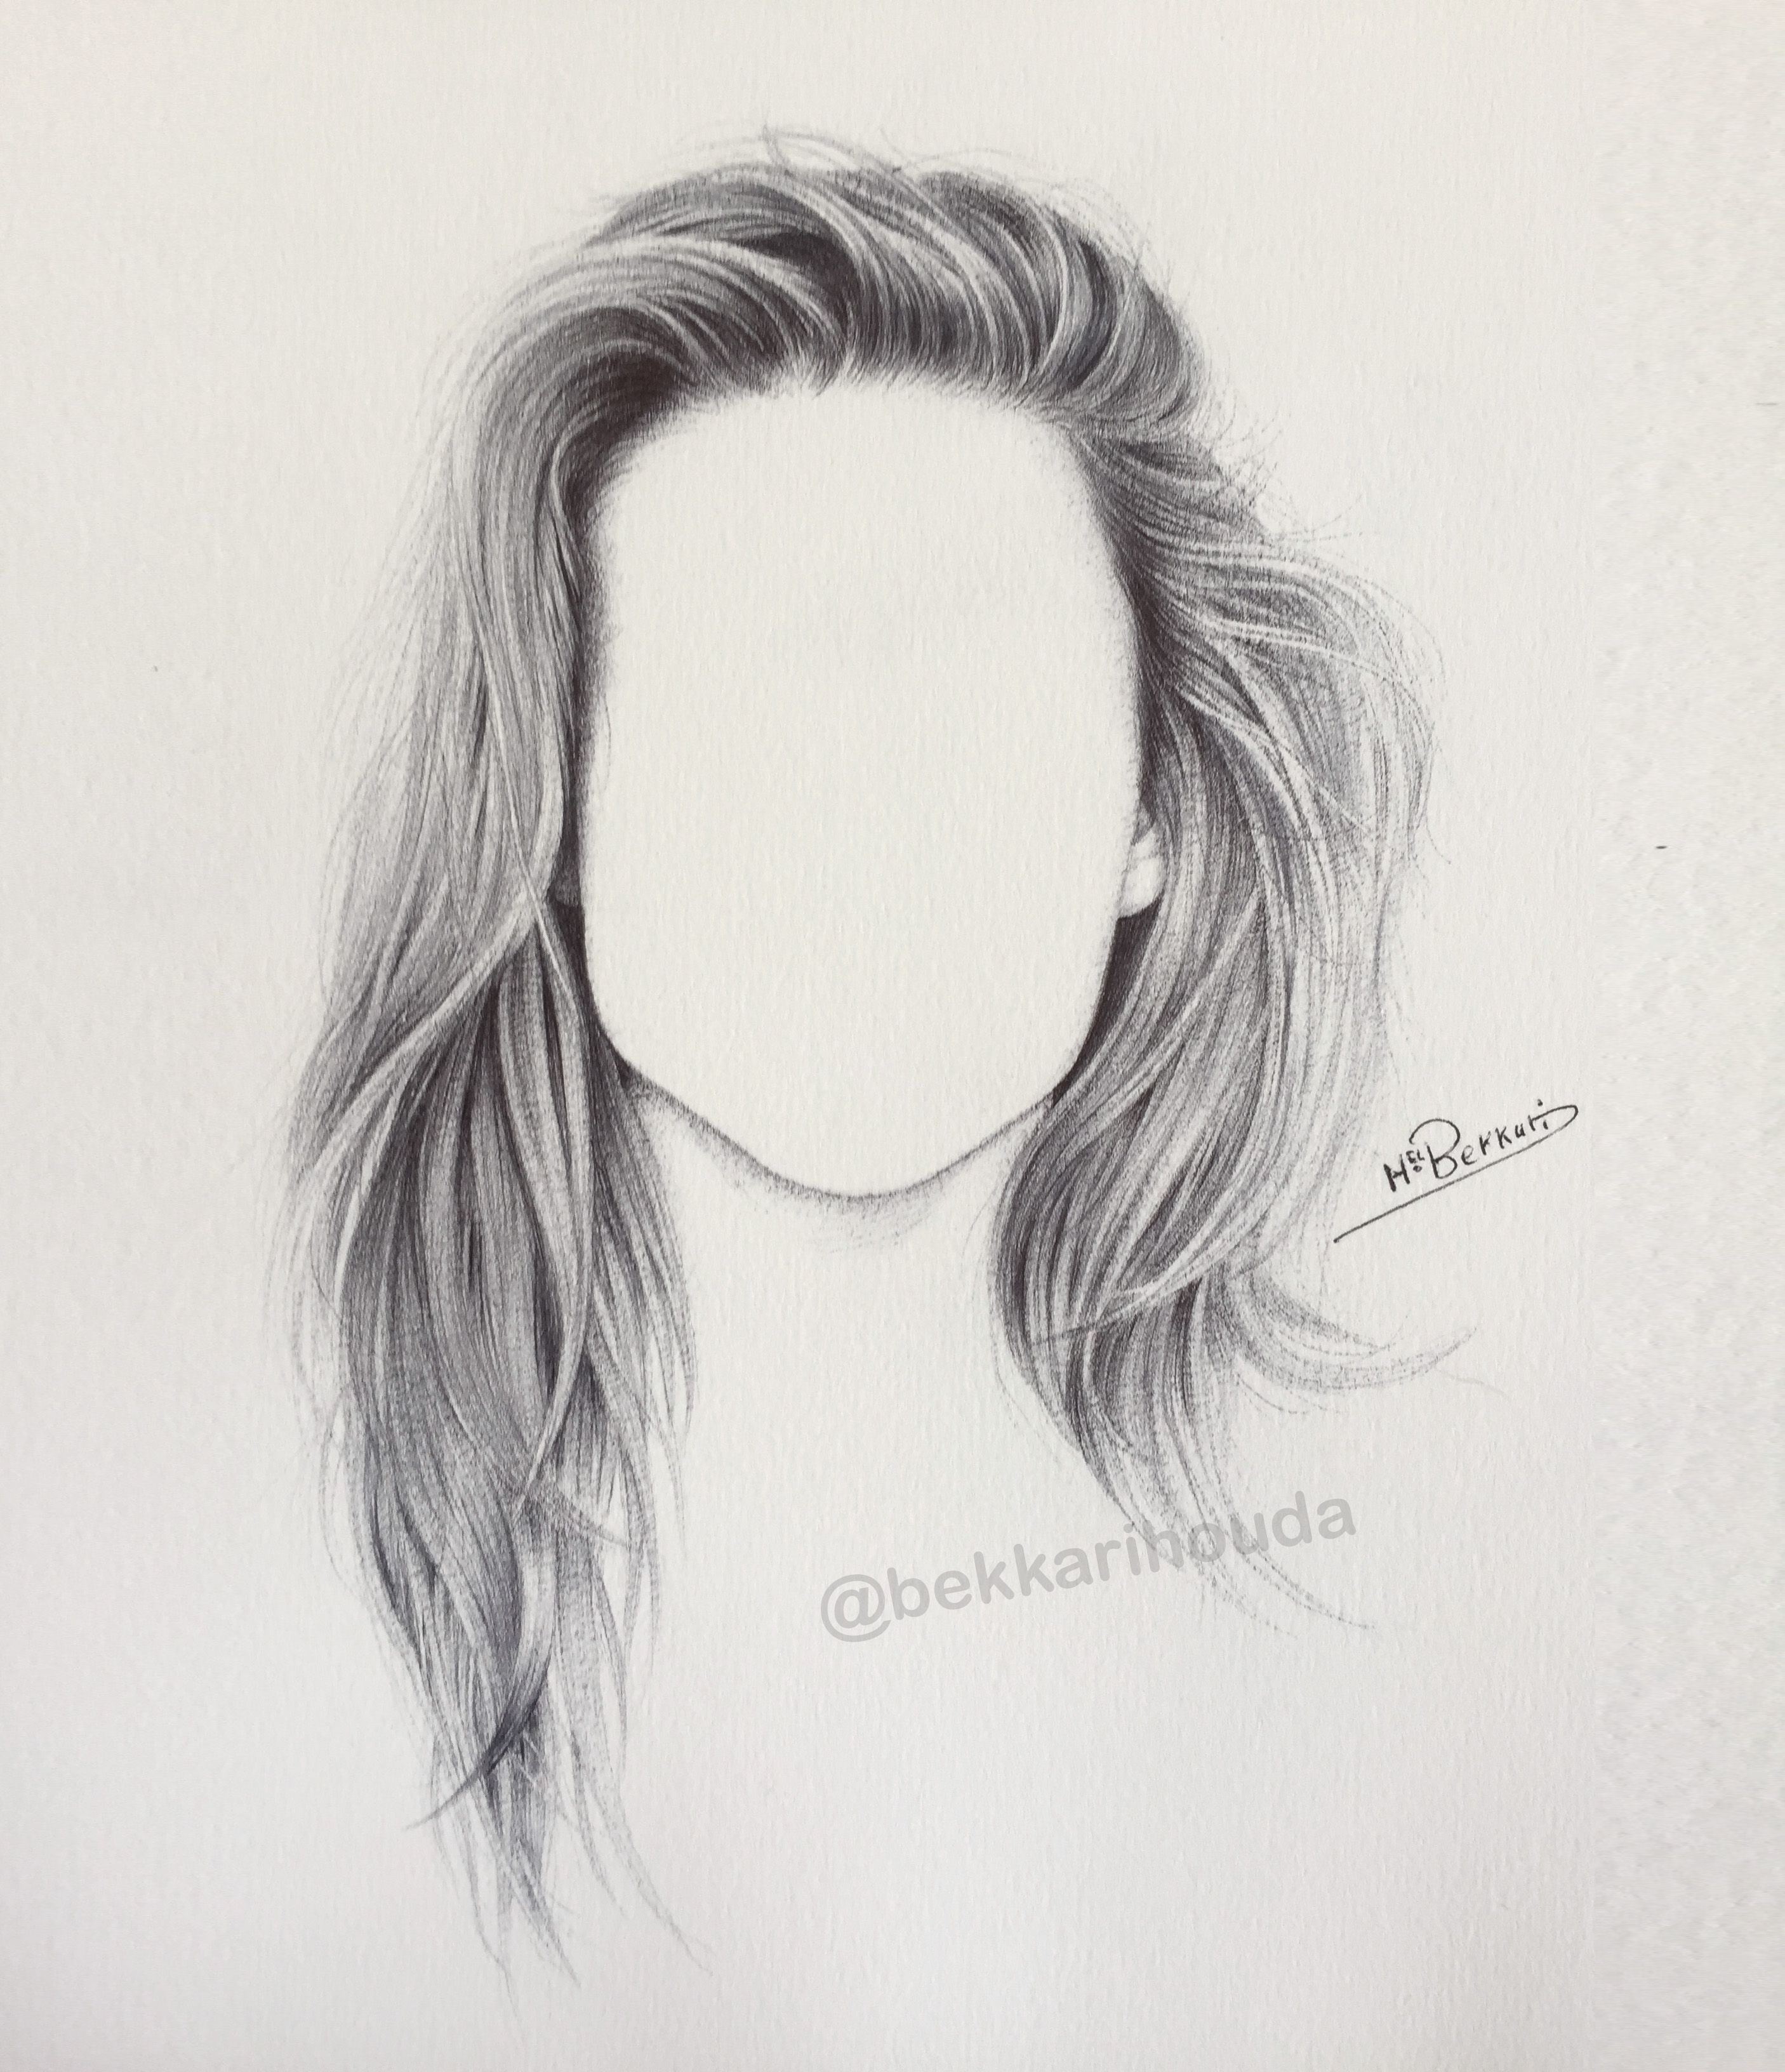 How To Draw Detailed Hair Realistic Hair Drawing Realistic Drawings Drawing Hair Tutorial